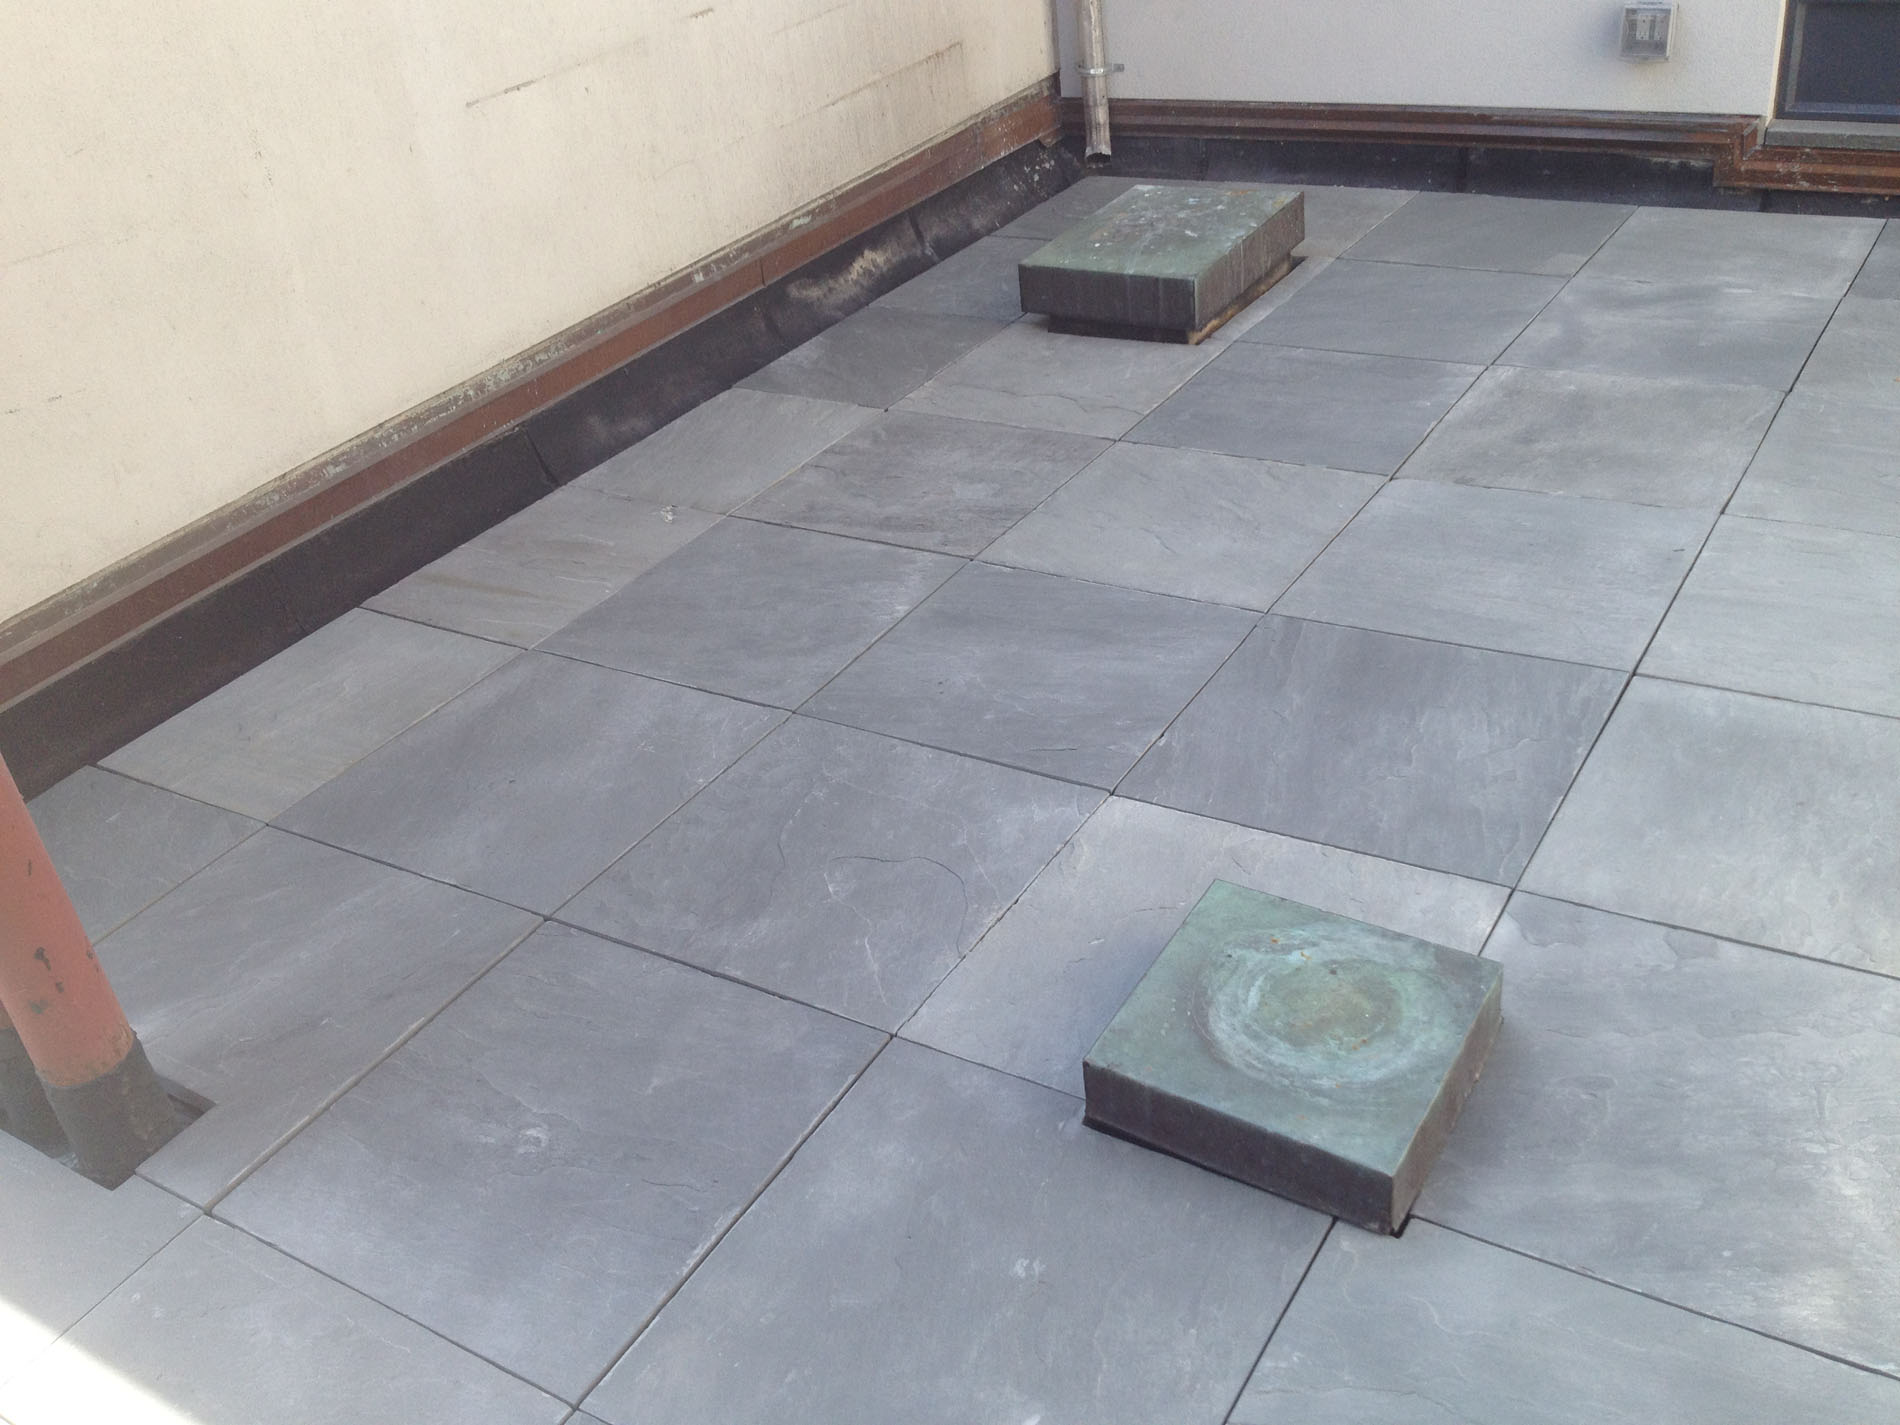 Bluestone Pavers On A Pedestal Decking System Rooftop In Nyc